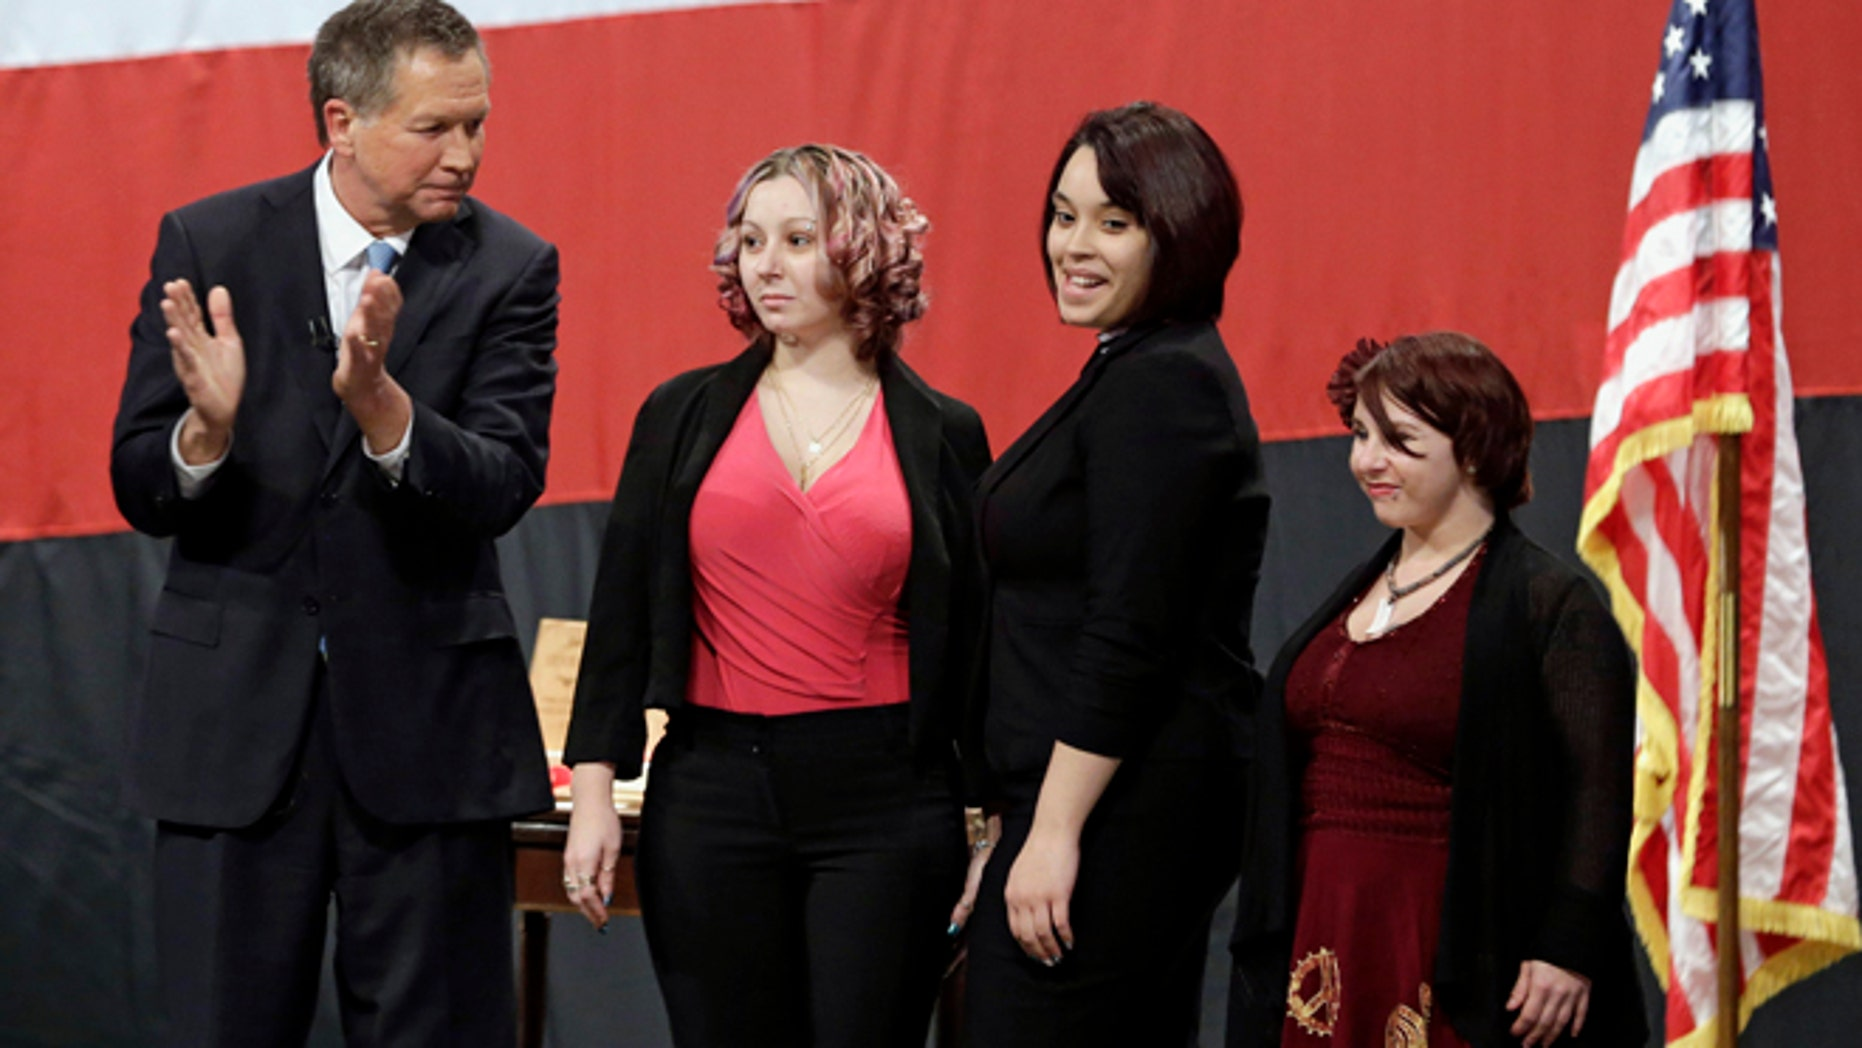 FILE- This Monday, Feb. 24, 2014 file photo shows Ohio Gov. John Kasich, from left, introducing Amanda Berry, Gina DeJesus and Michelle Knight during his State of the State address at the Performing Arts Center in Medina, Ohio. Berry broke through a screen door to freedom last May. Upstairs, officers found DeJesus and Knight. They had been snatched off the streets separately between 2002 and 2004 and locked inside Castroâs house where he chained and raped them, investigators later said. (AP Photo/Tony Dejak, File)